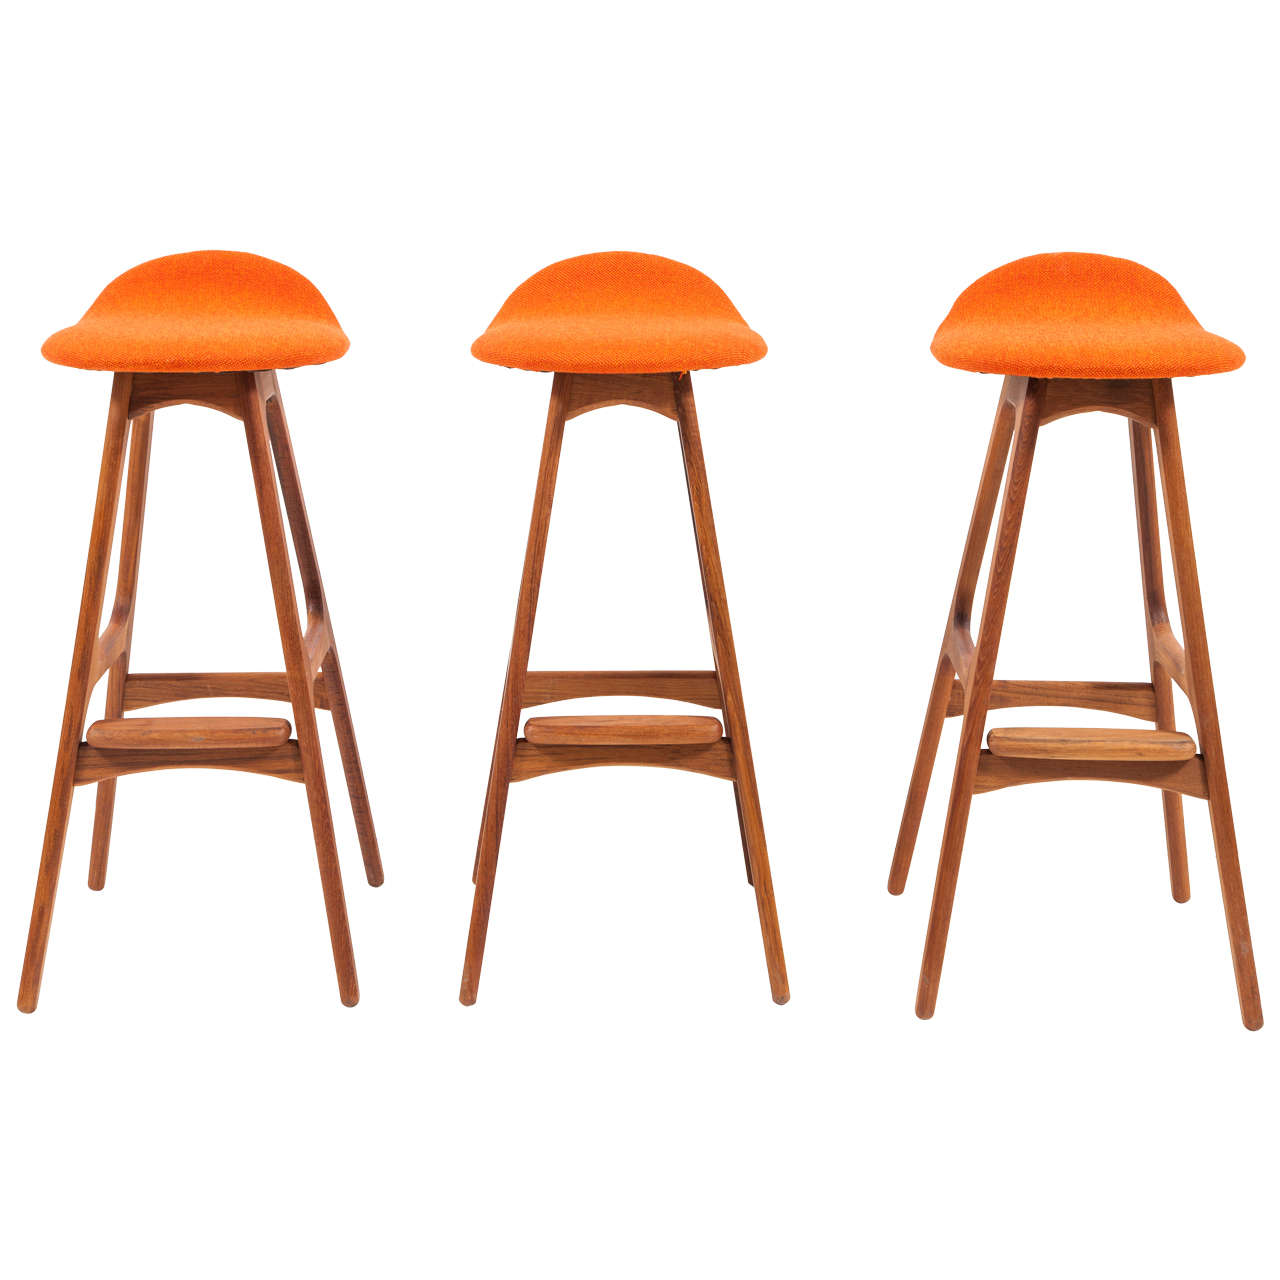 Erik buch set of three bar stools in teak at 1stdibs - Erik buch bar stool ...